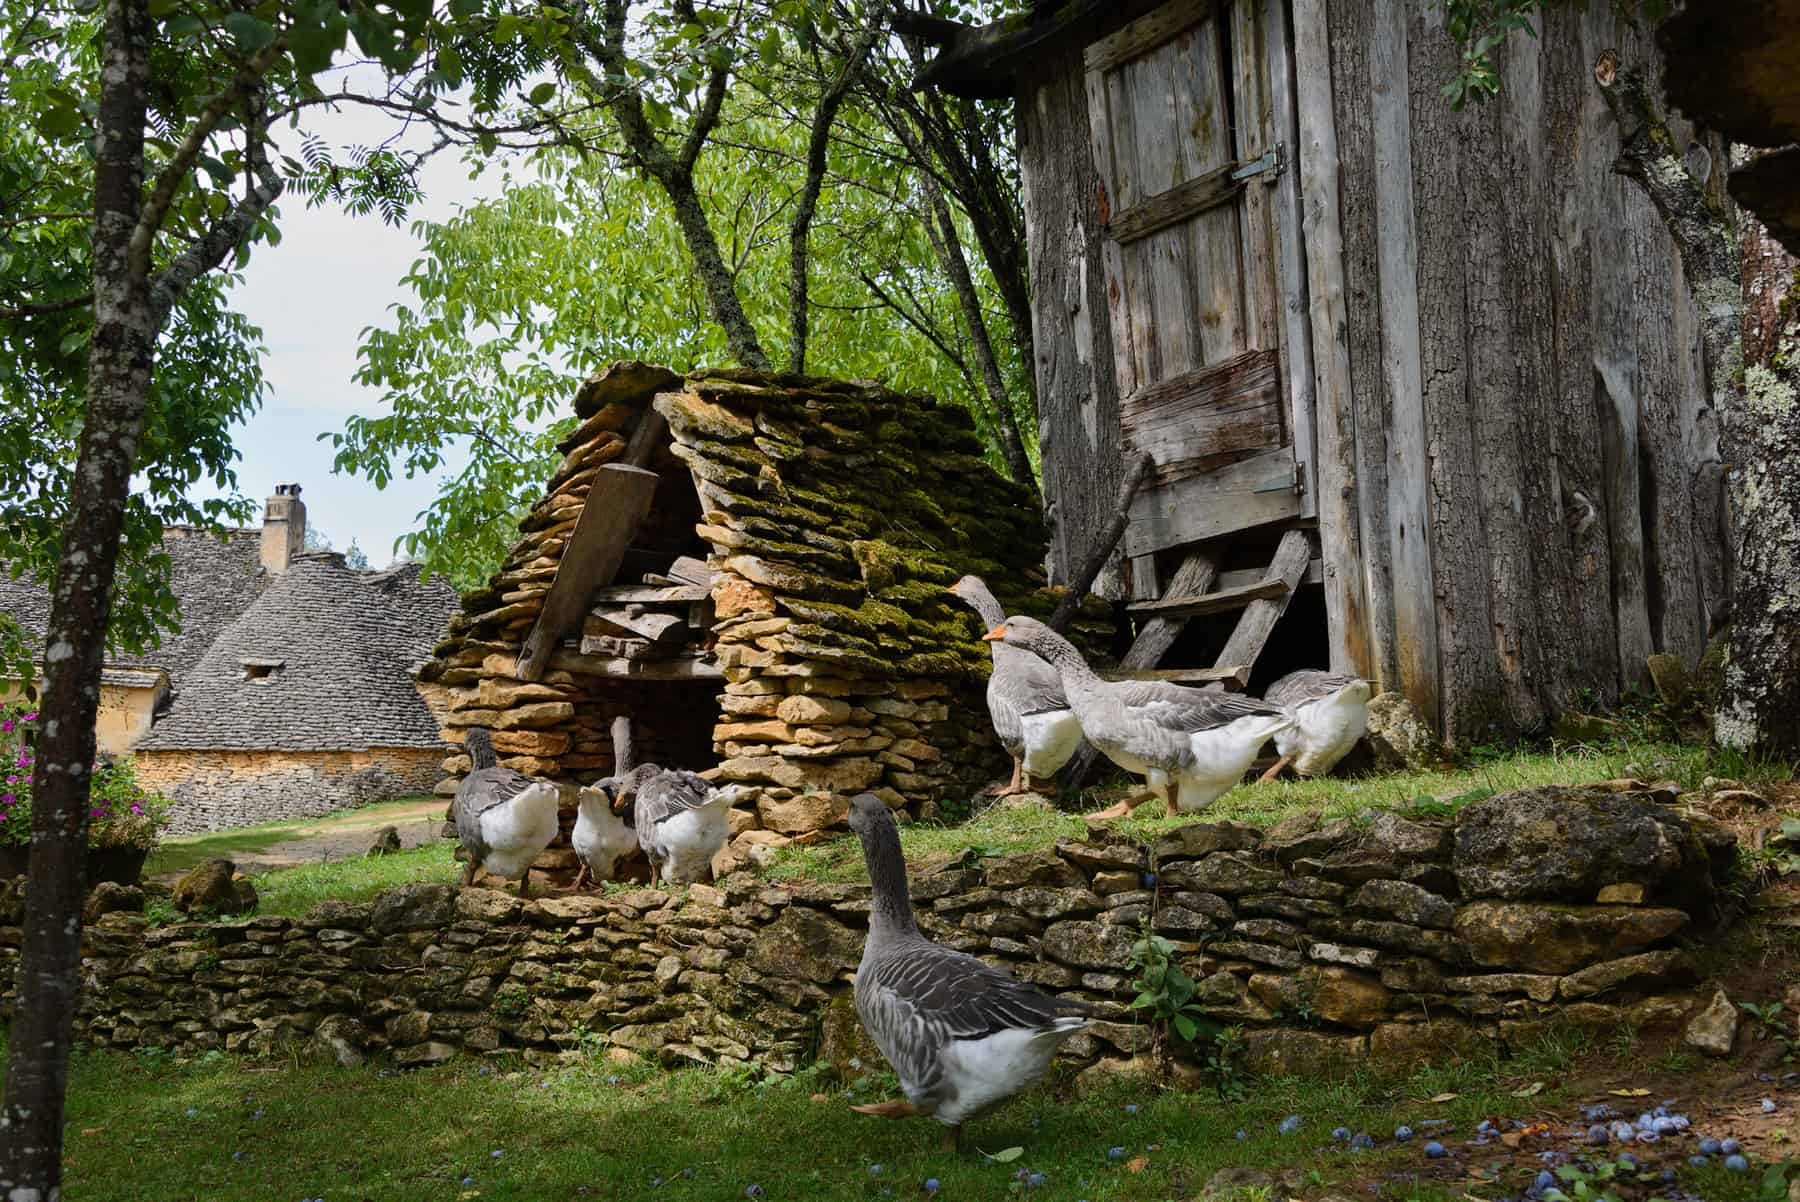 Grey foie gras geese walking to their goose house on a traditional goose farm near Sarlat, Perigord, where they also have truffles.Dordogne region, France.